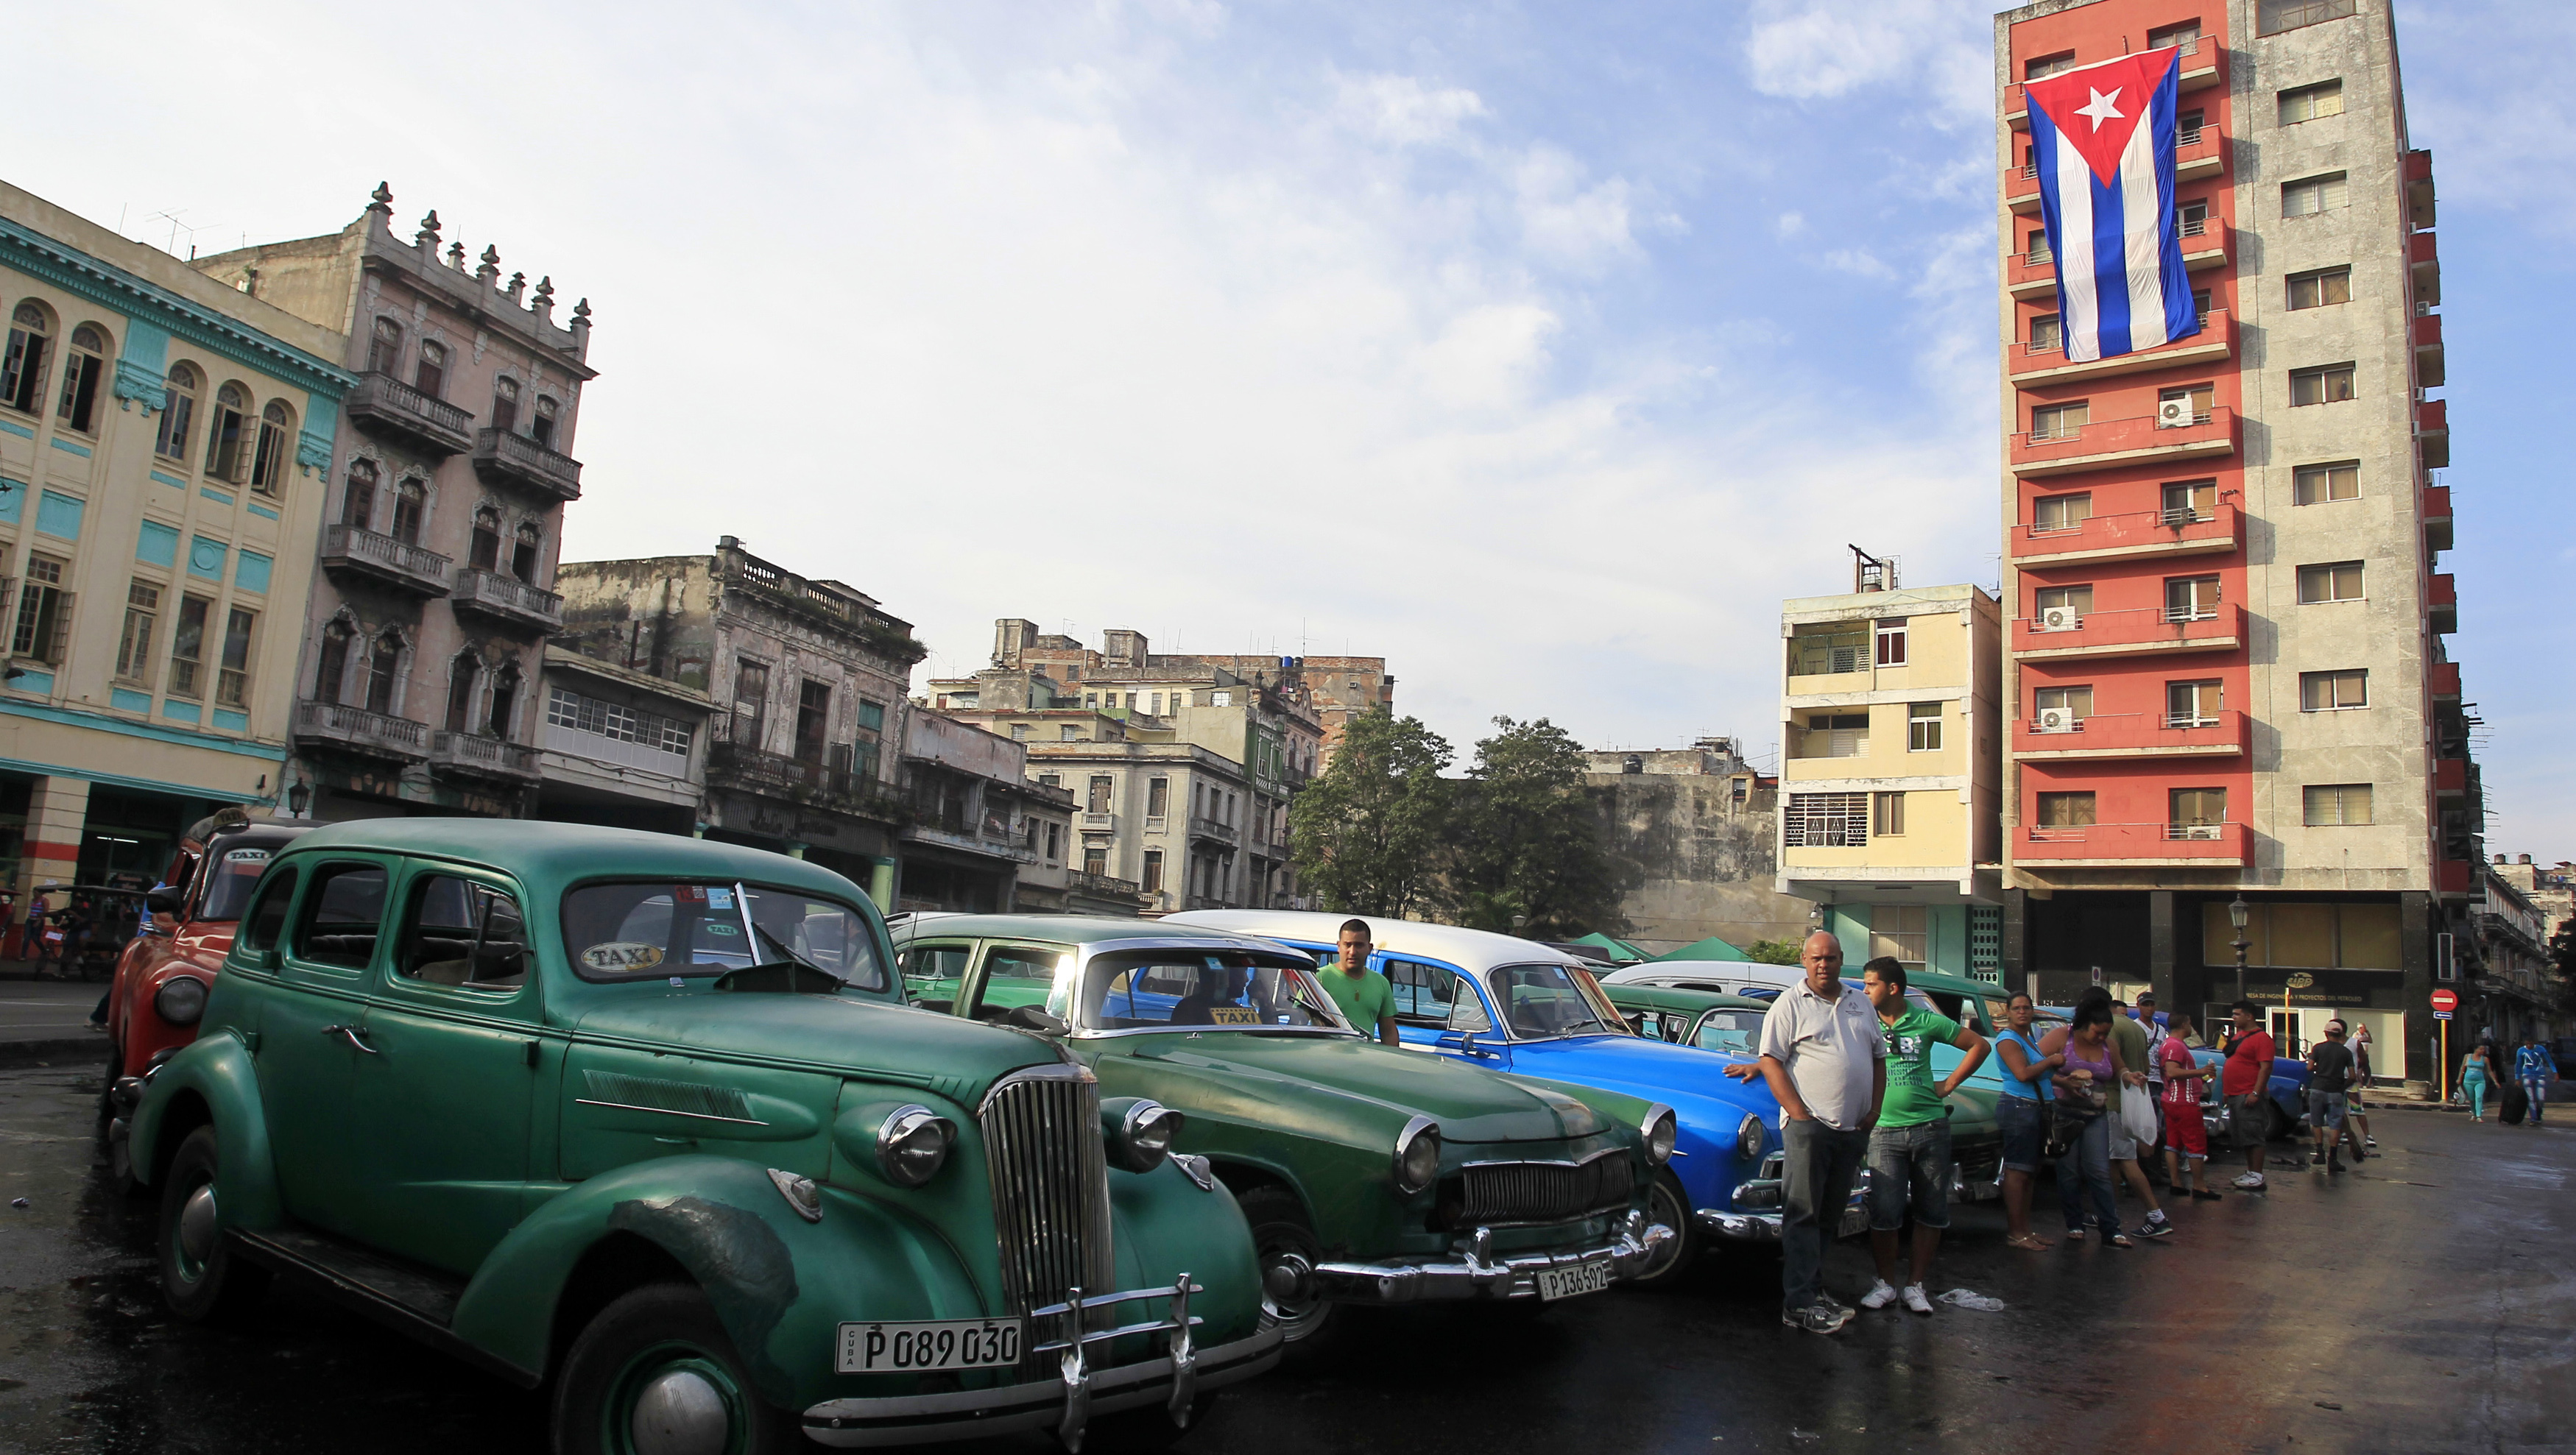 Vintage cars used as taxis are parked on a street in Havana